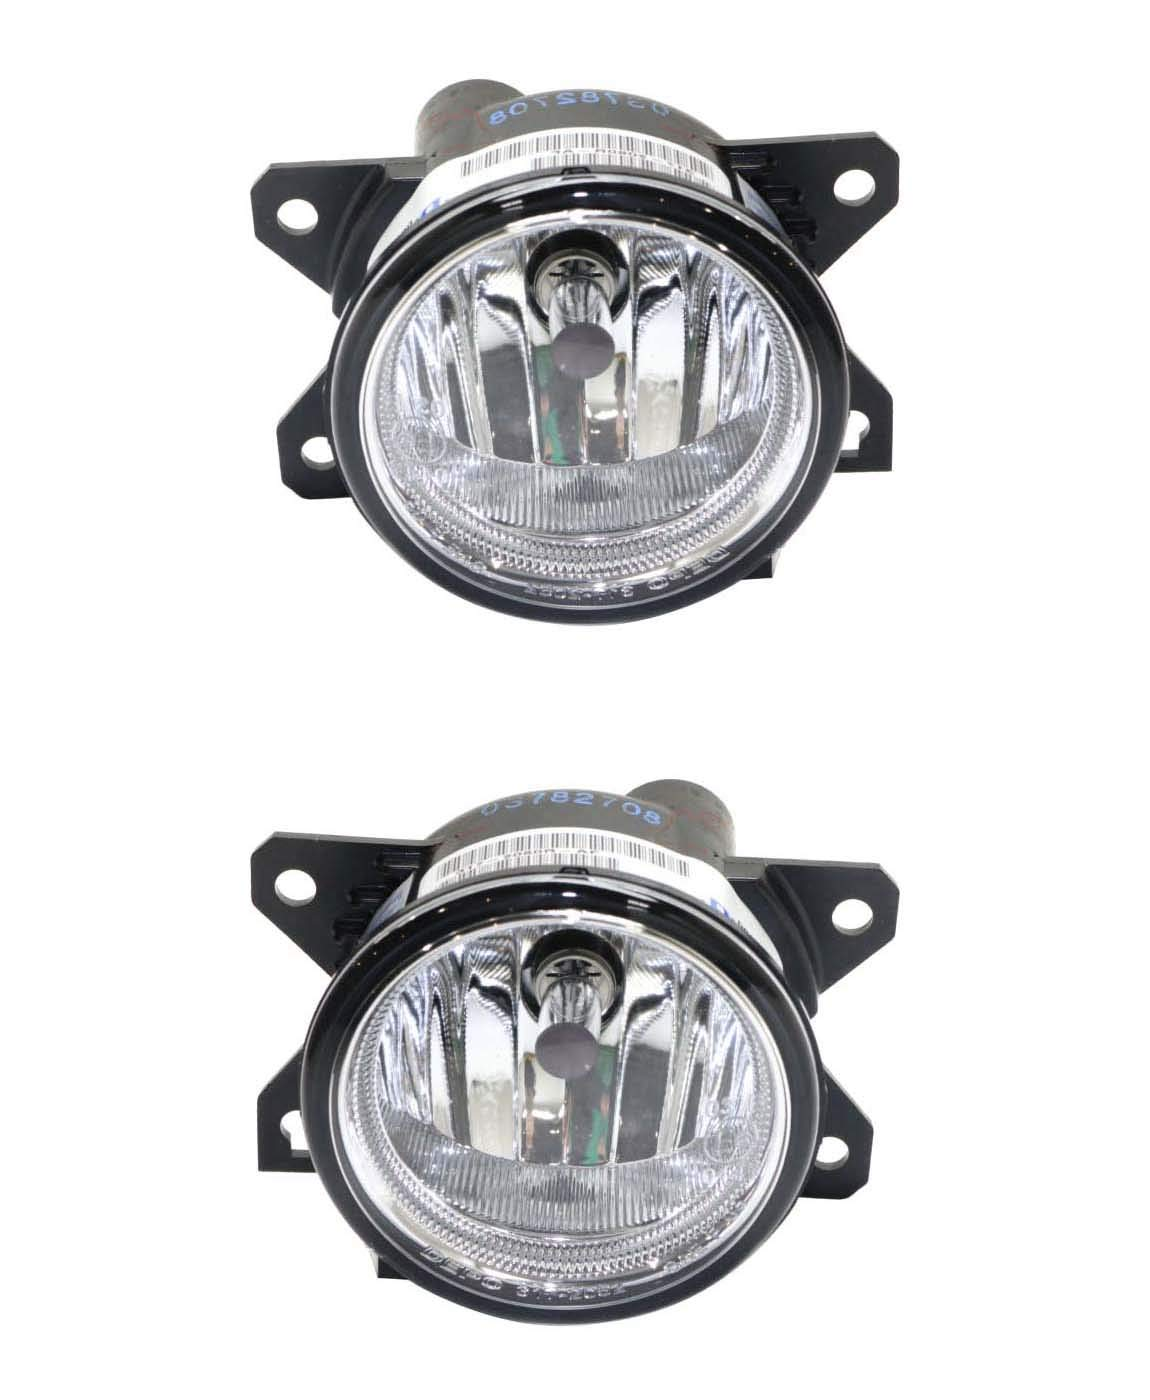 96-00 CR-V CLEAR SIDE REPEATERS -01 AutoArt HONDA CIVIC 3-DR HATCH COUPE HR-V -01